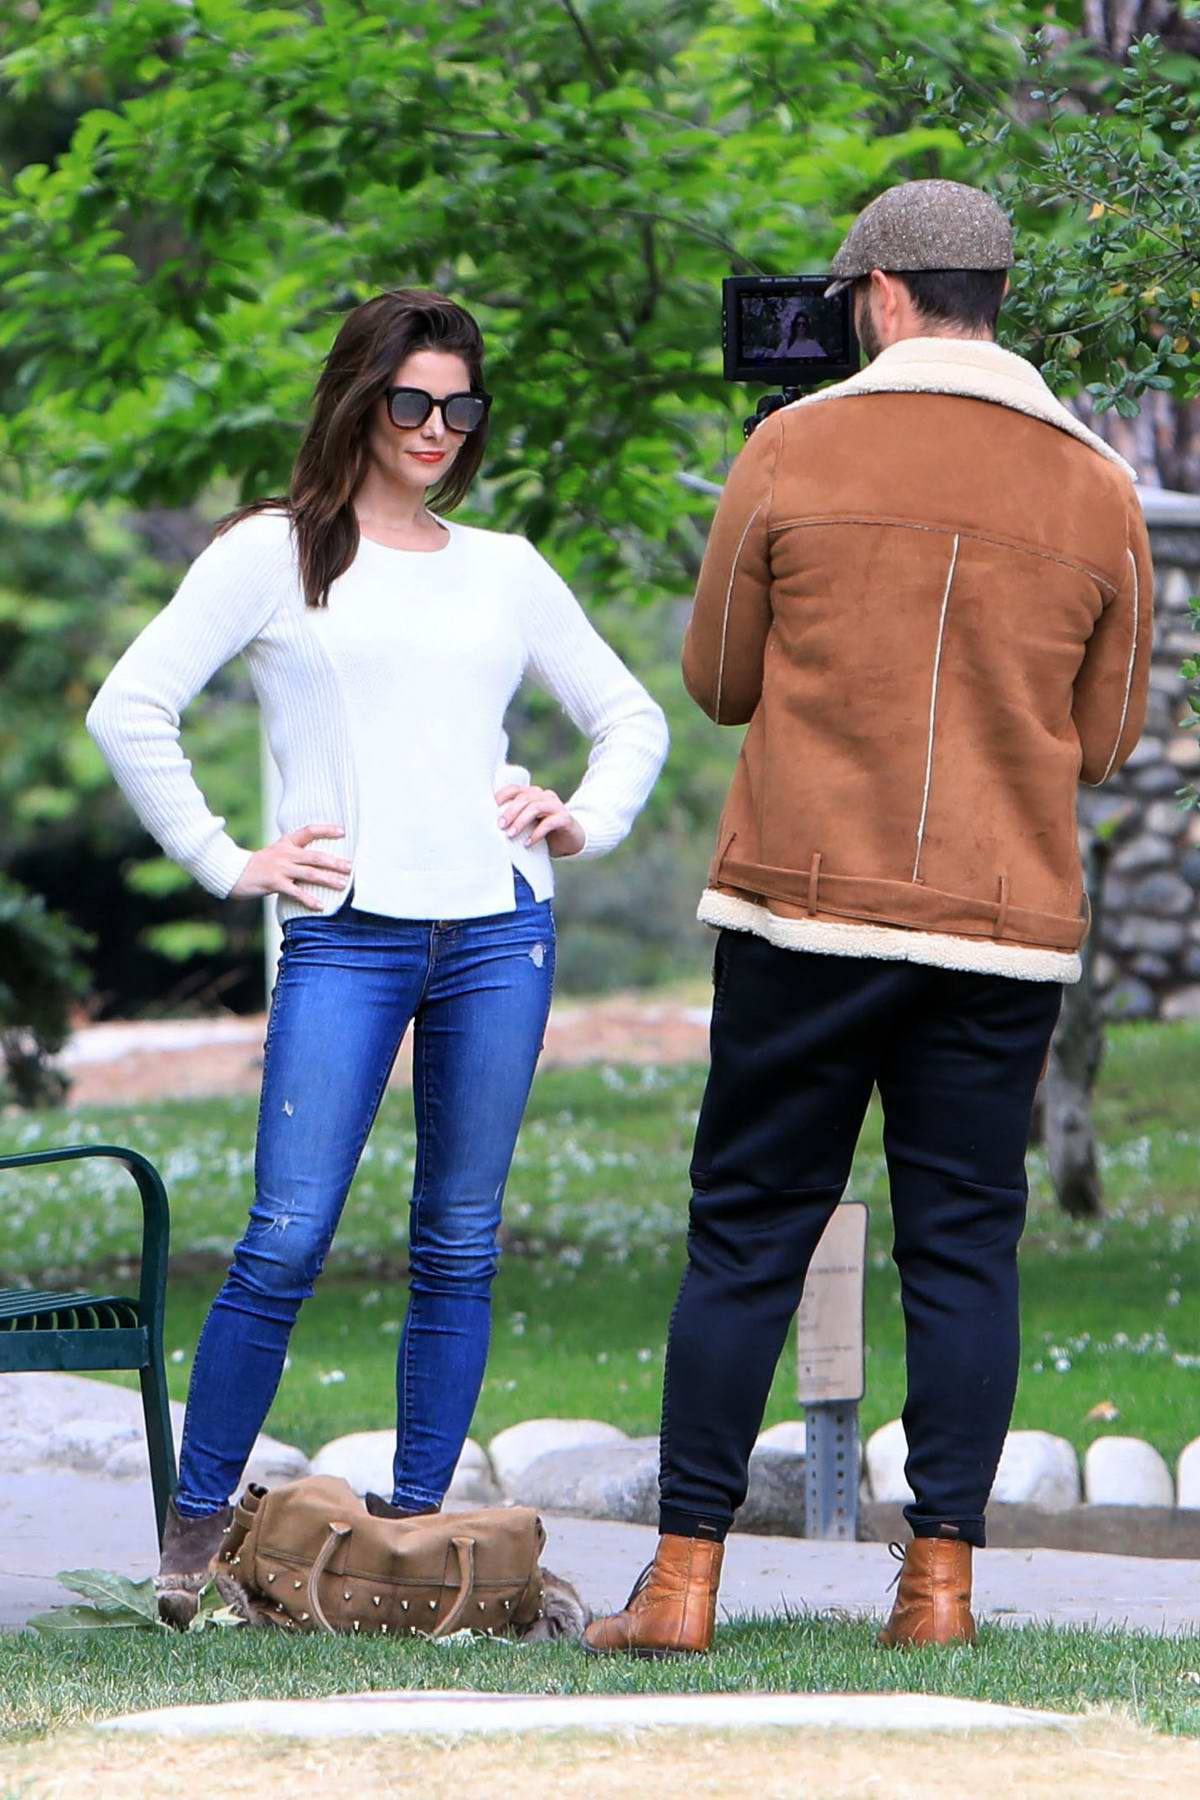 Ashley Greene strikes a pose while husband Paul Khoury films her on a RED camera at the park in Beverly Hills, Los Angeles